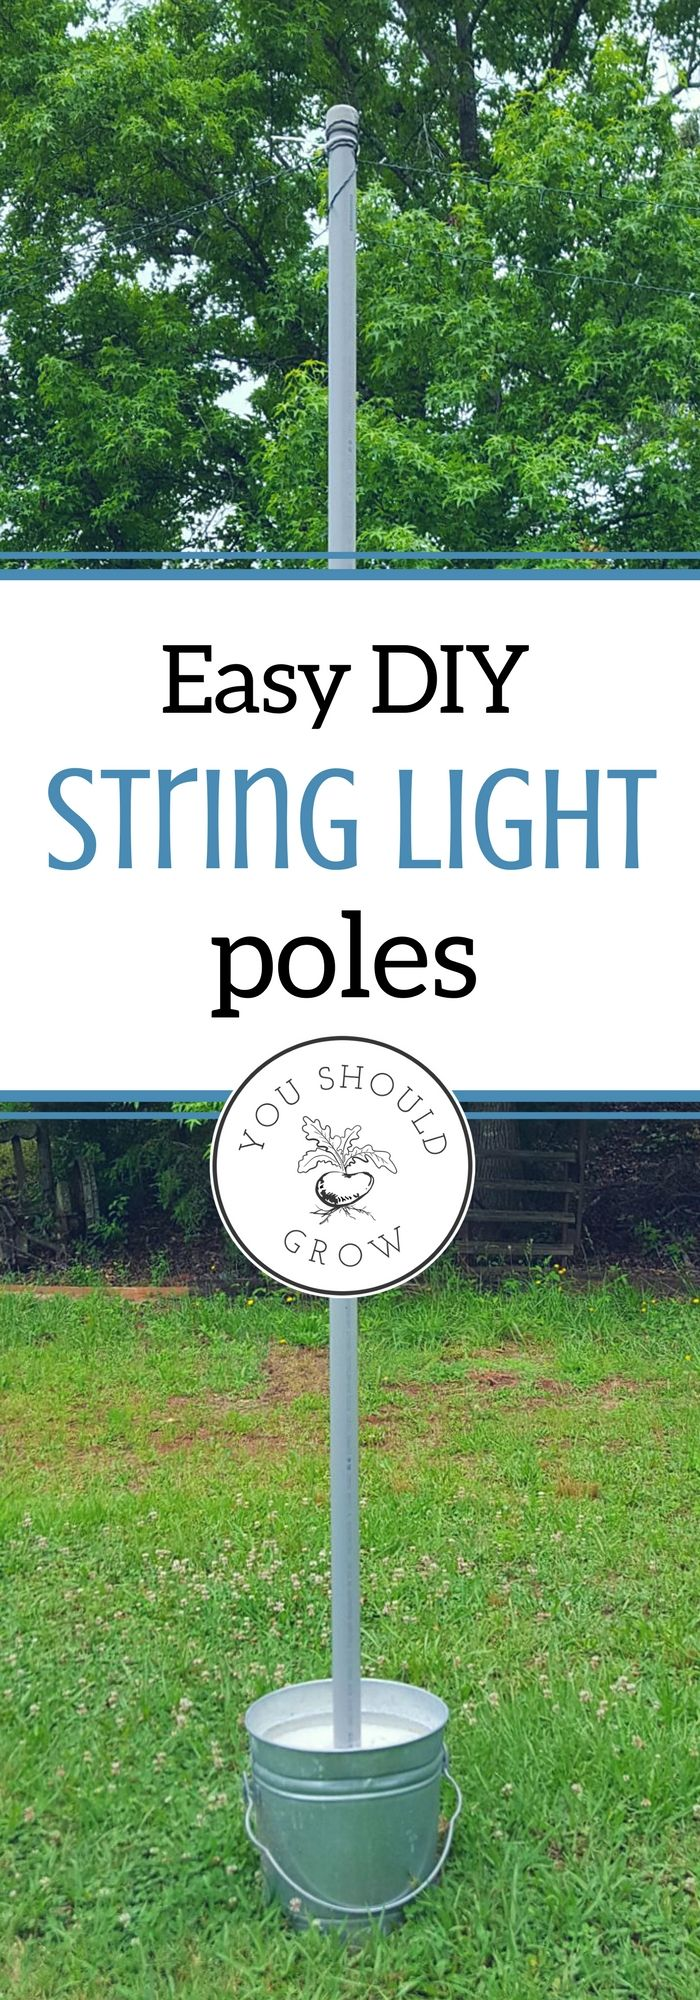 This is an easy DIY for outdoor lighting. These string light poles took only a few minutes and less than $100 to complete. Used with solar lights, they are mobile, but they're also sturdy enough to be left outside all the time. via @whippoorwillgar